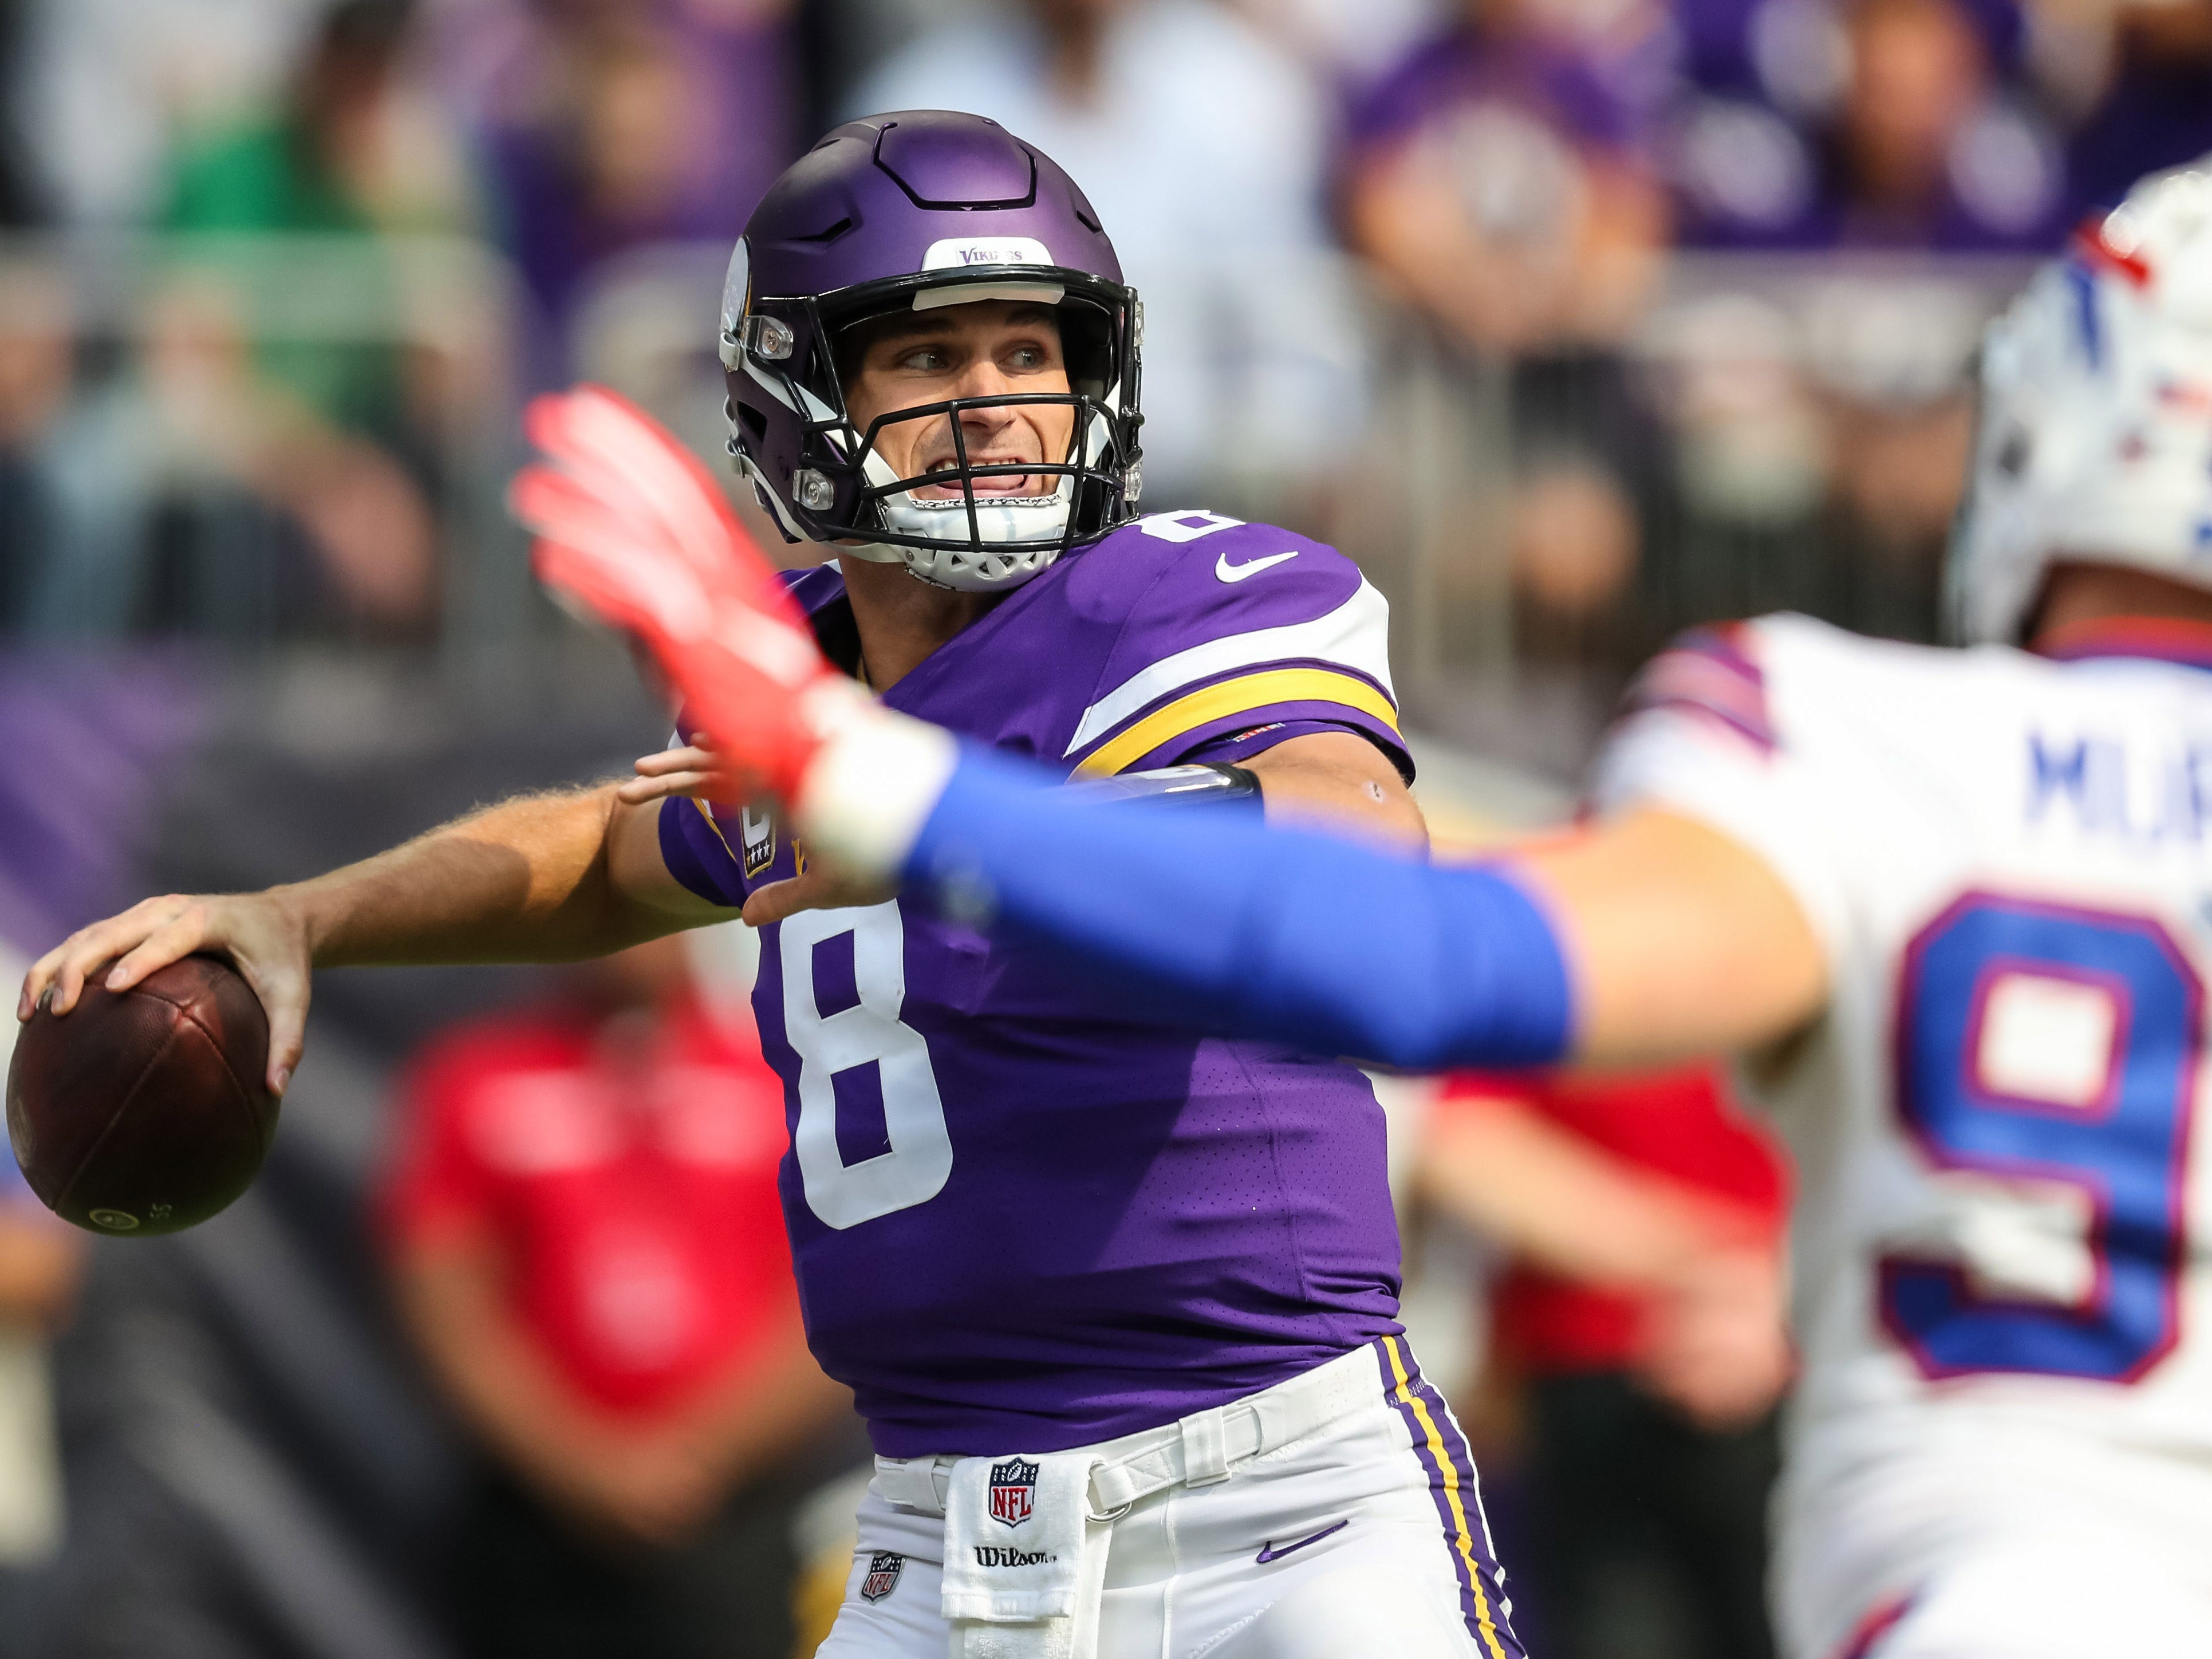 19. Vikings (5): Kirk Cousins on pace for 741 passes, which would break Matthew Stafford's single-season record (727). Cousins getting paid per throw?